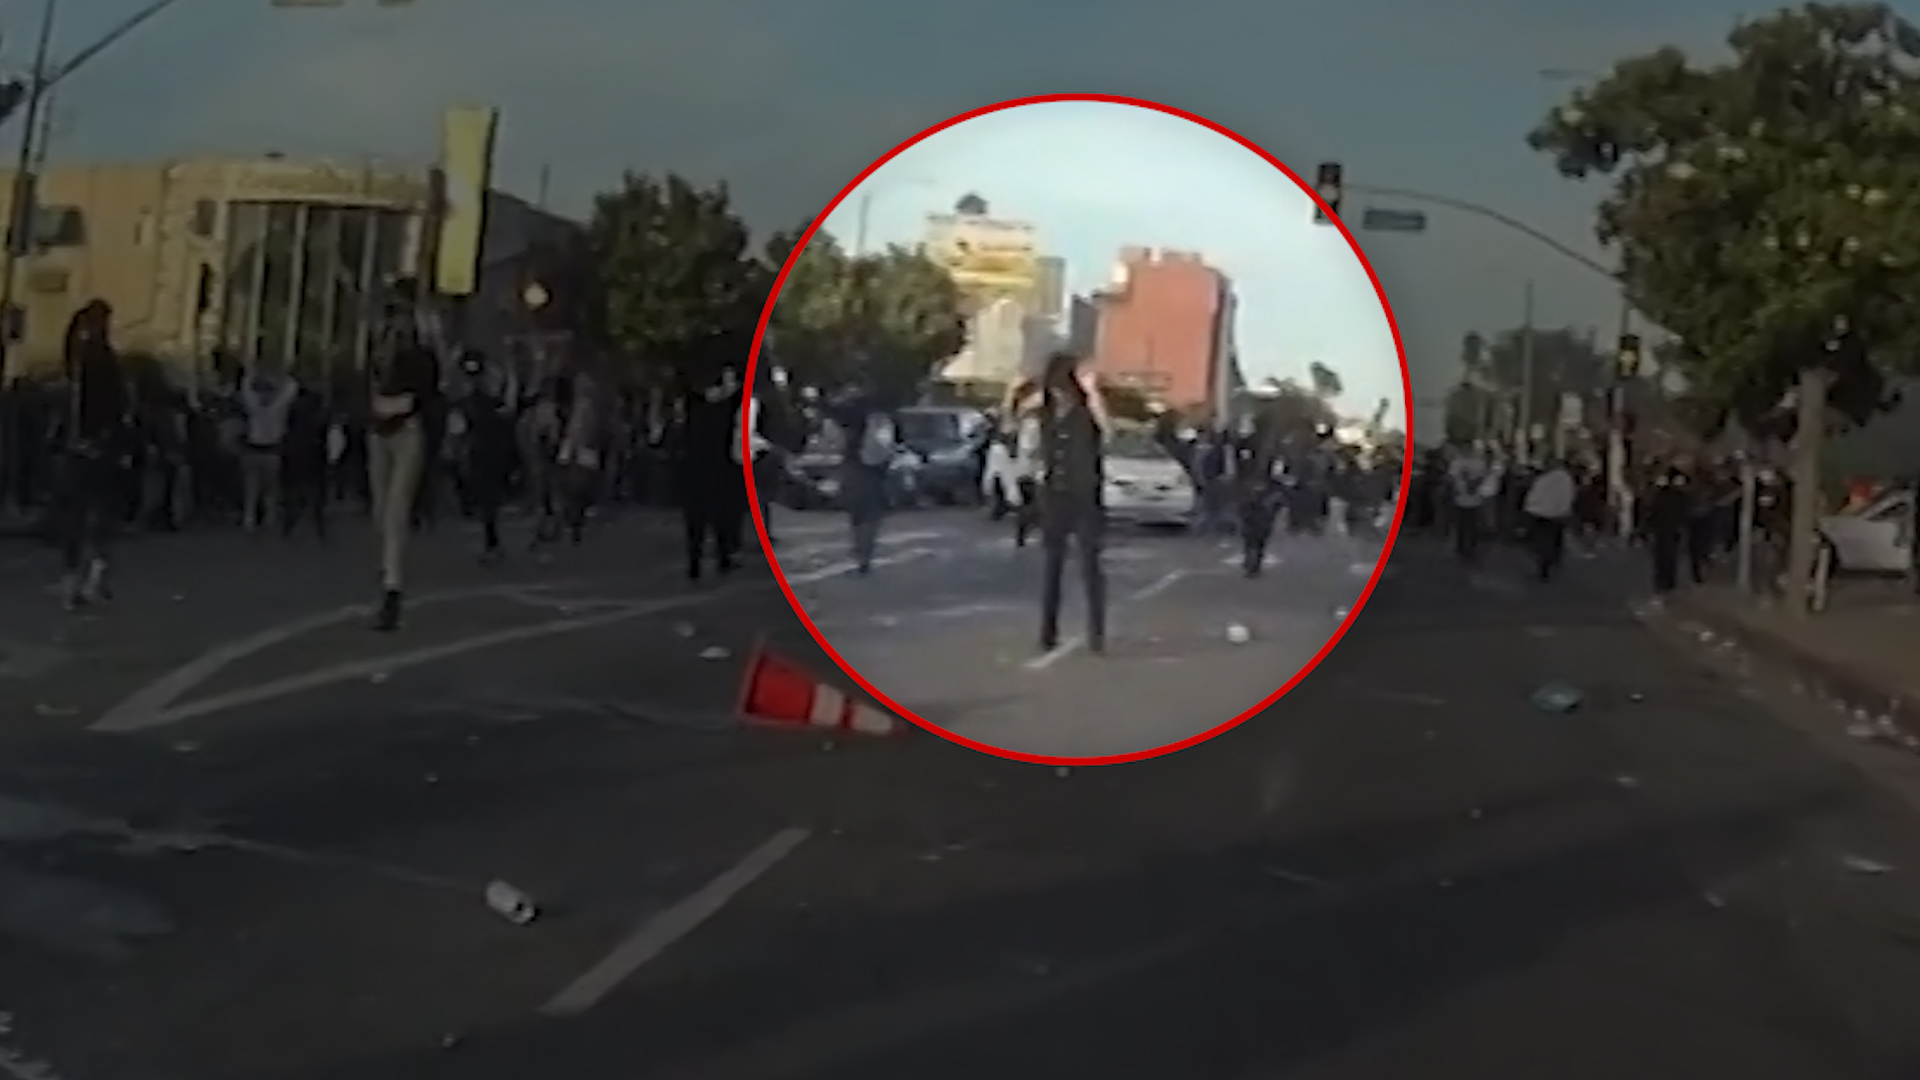 LAPD releases video showing protester shot in head with 'less-lethal' round